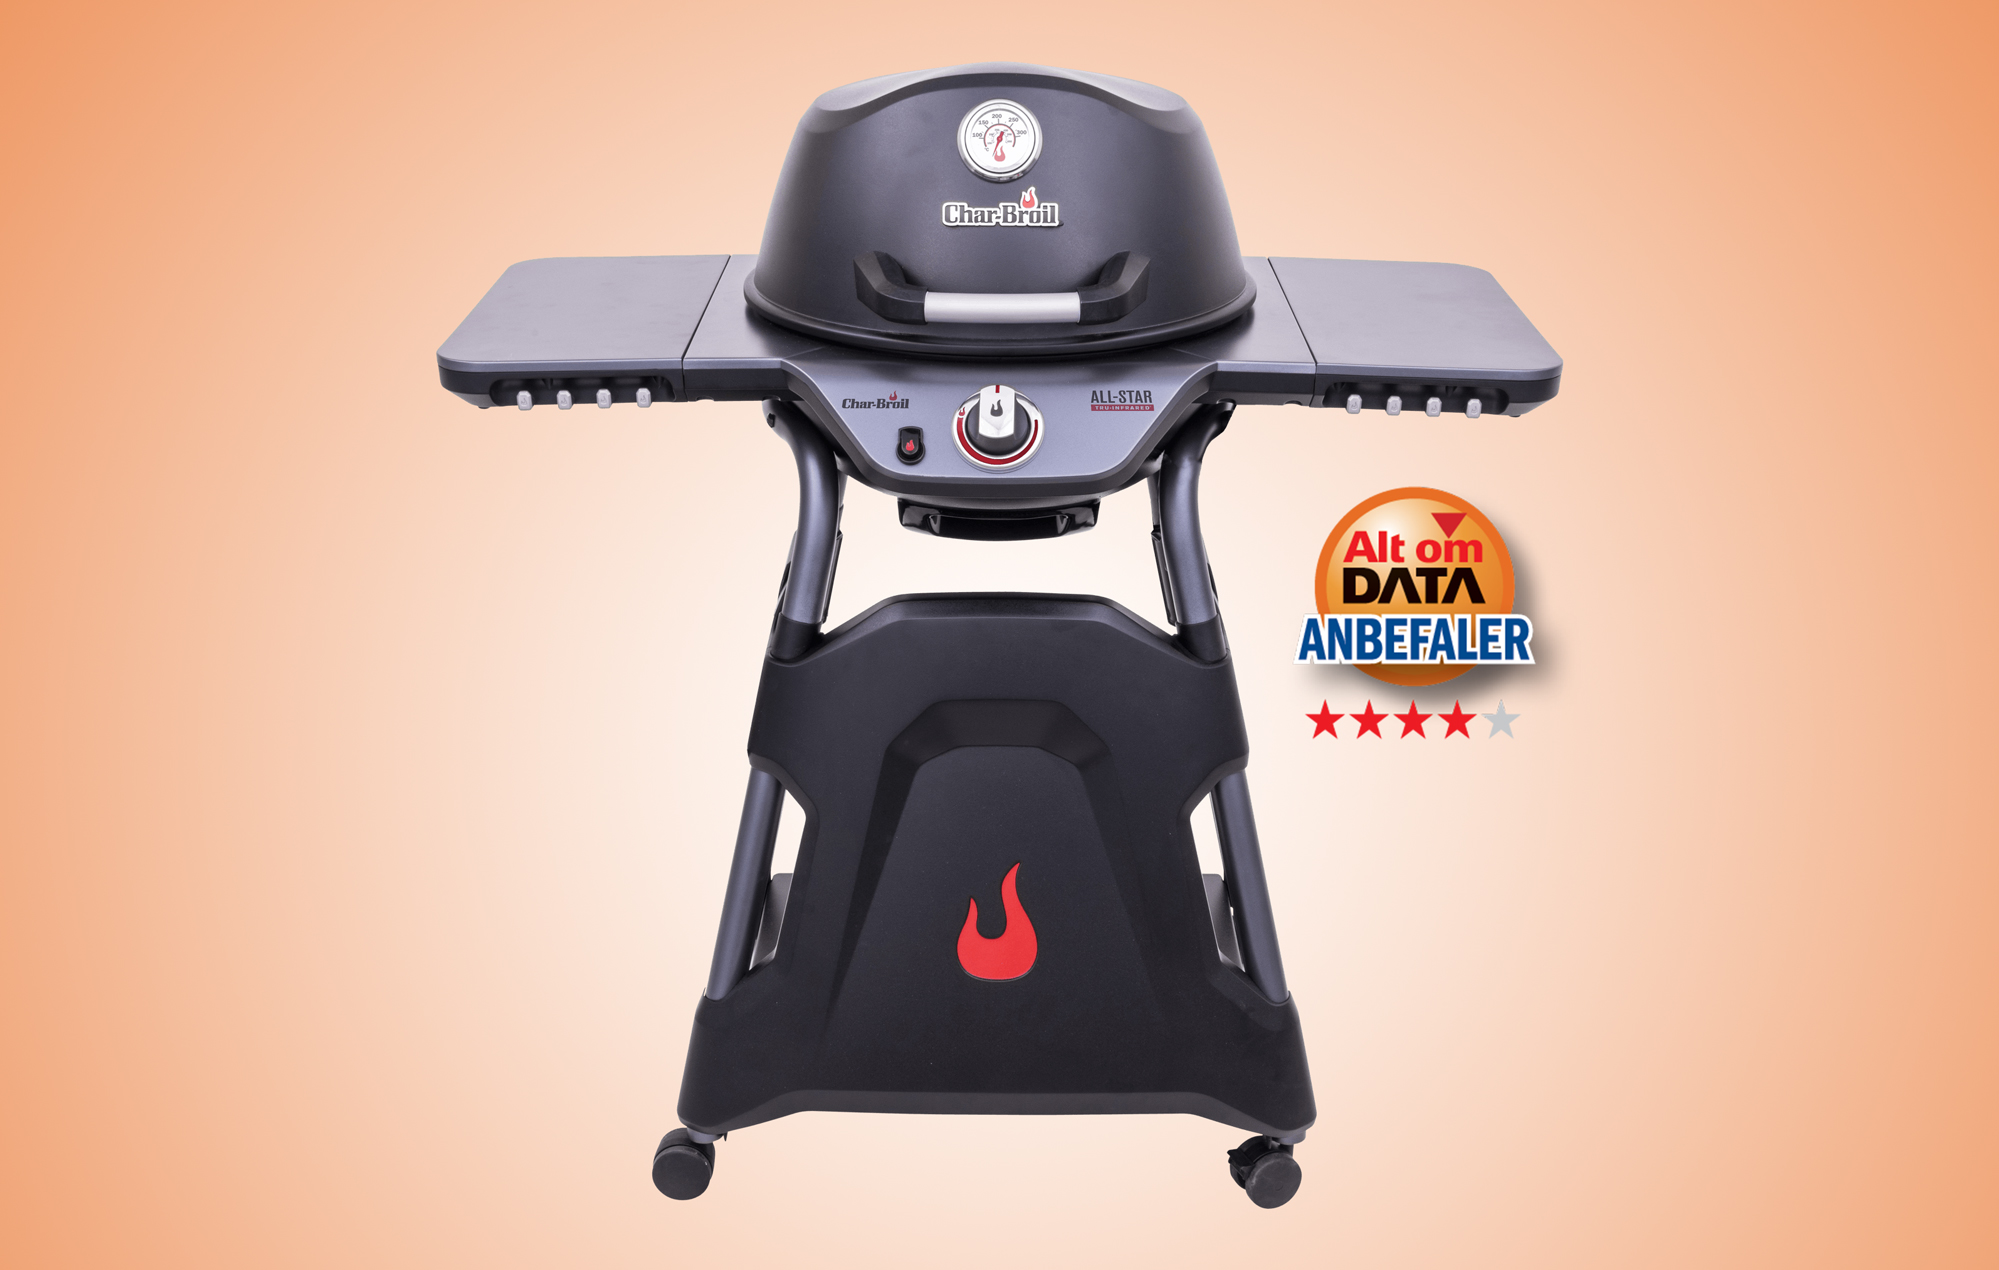 Charbroil All Star.